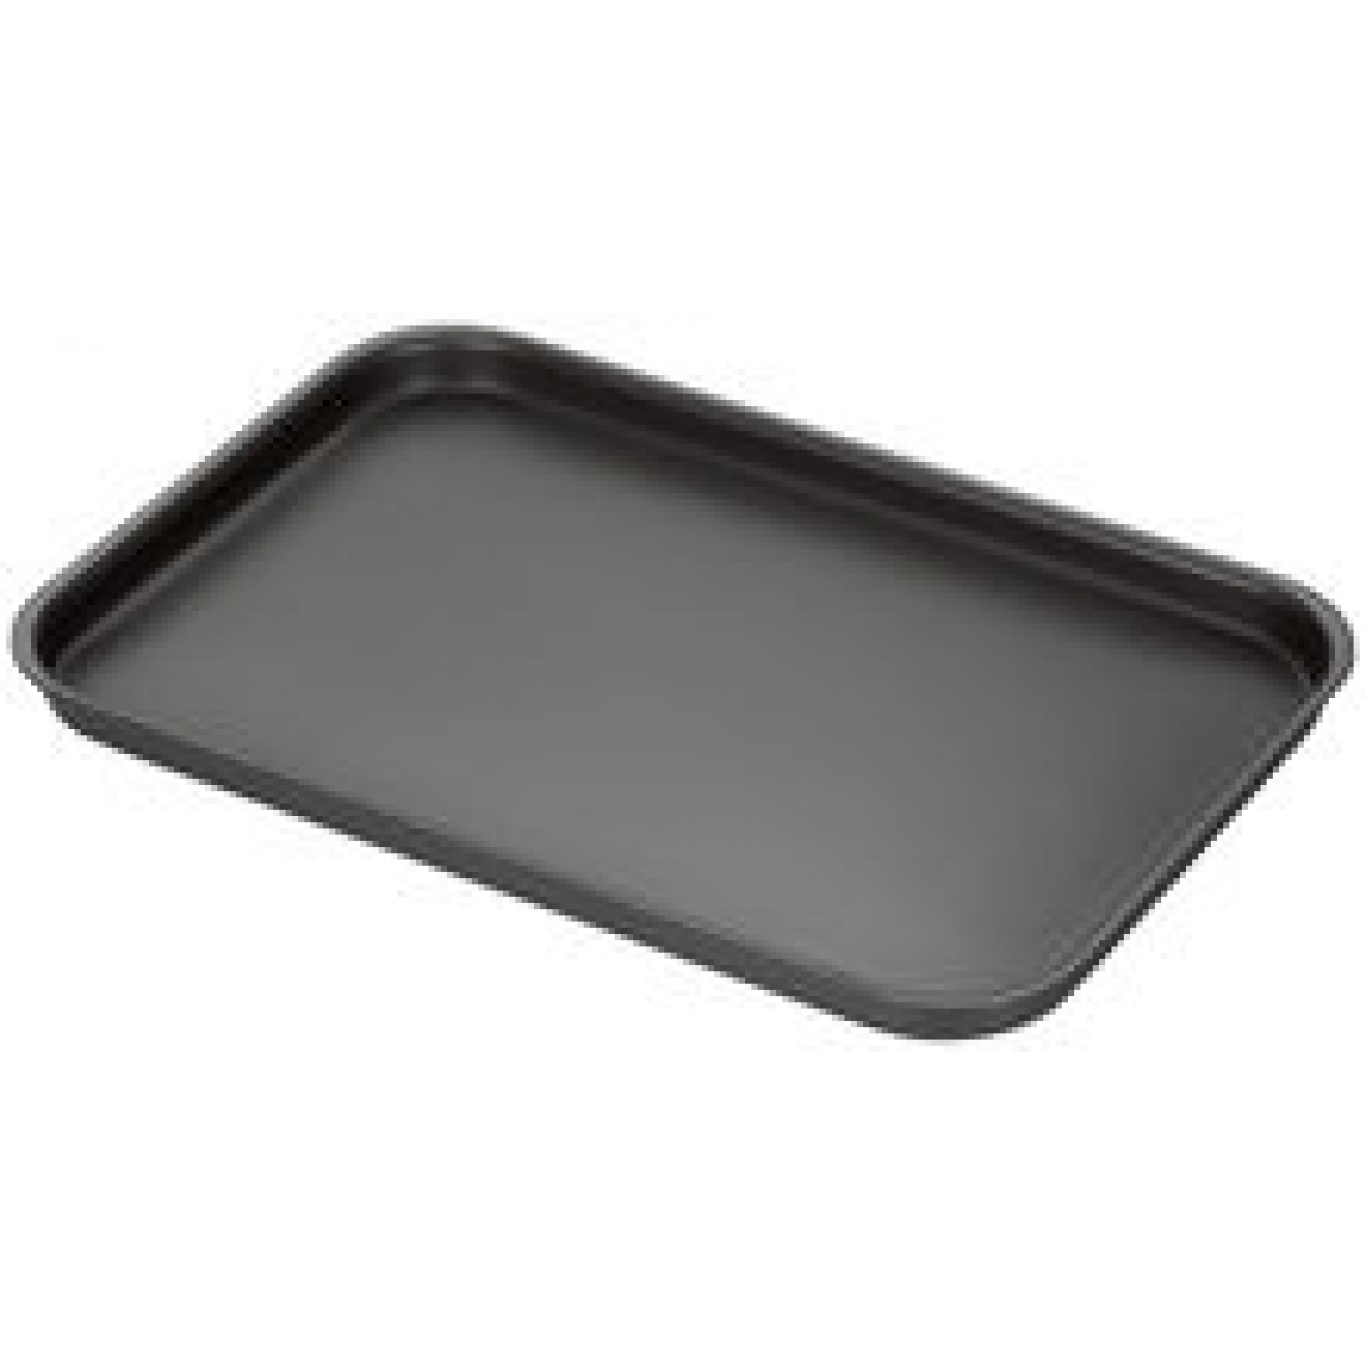 Image of Stellar Hard Anodised Baking Tray 36 x 25 x 1.5cm